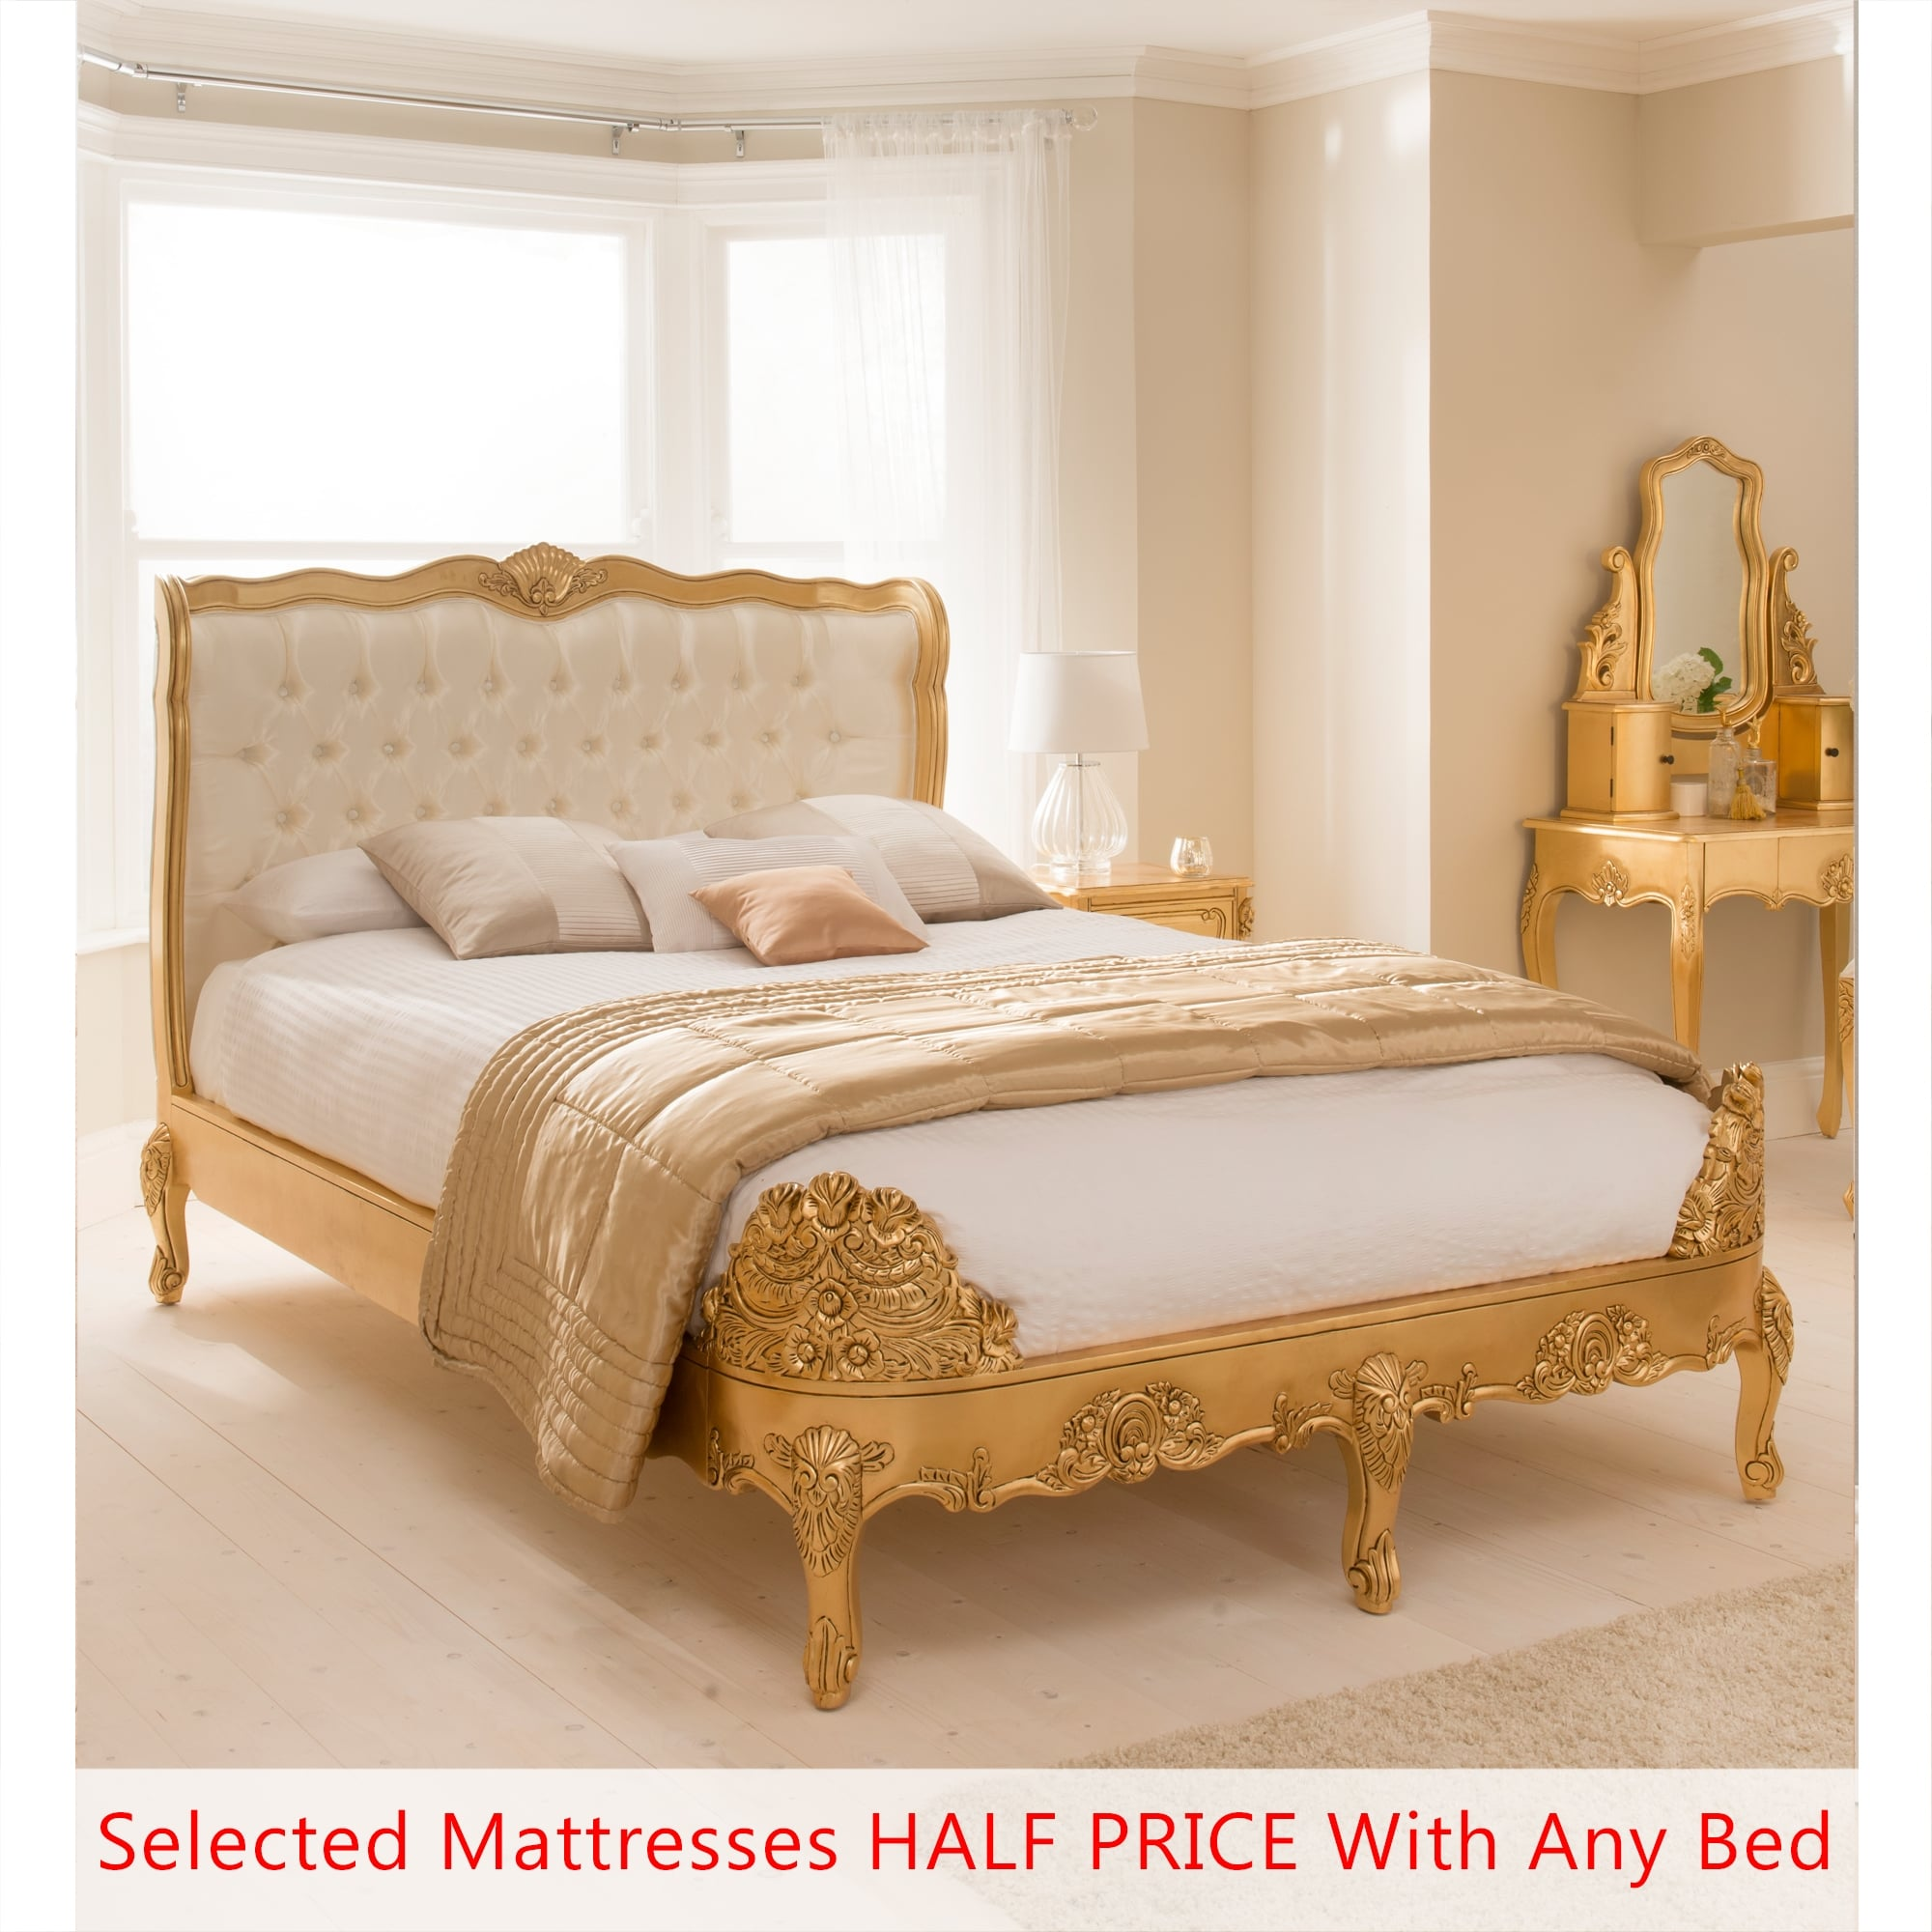 Antique French Style Ornate Gold Leaf Bed Mattress Deal